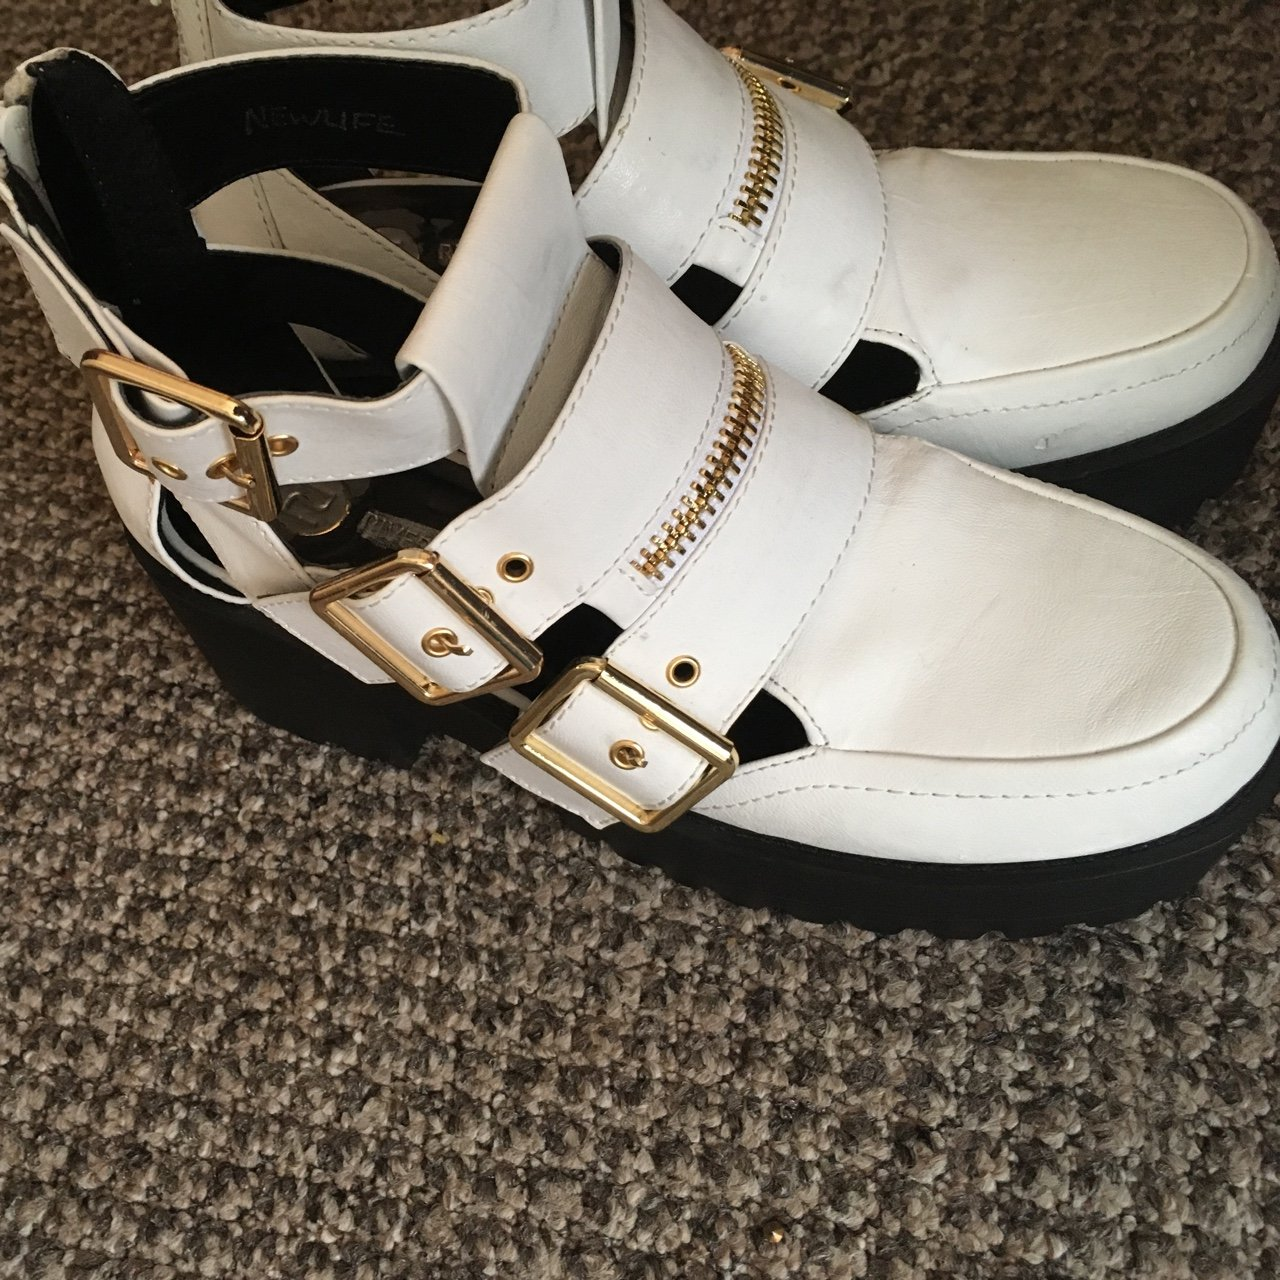 Few Minor Scratches River Island ShoesA White And Platform Depop JcuTl1FK3